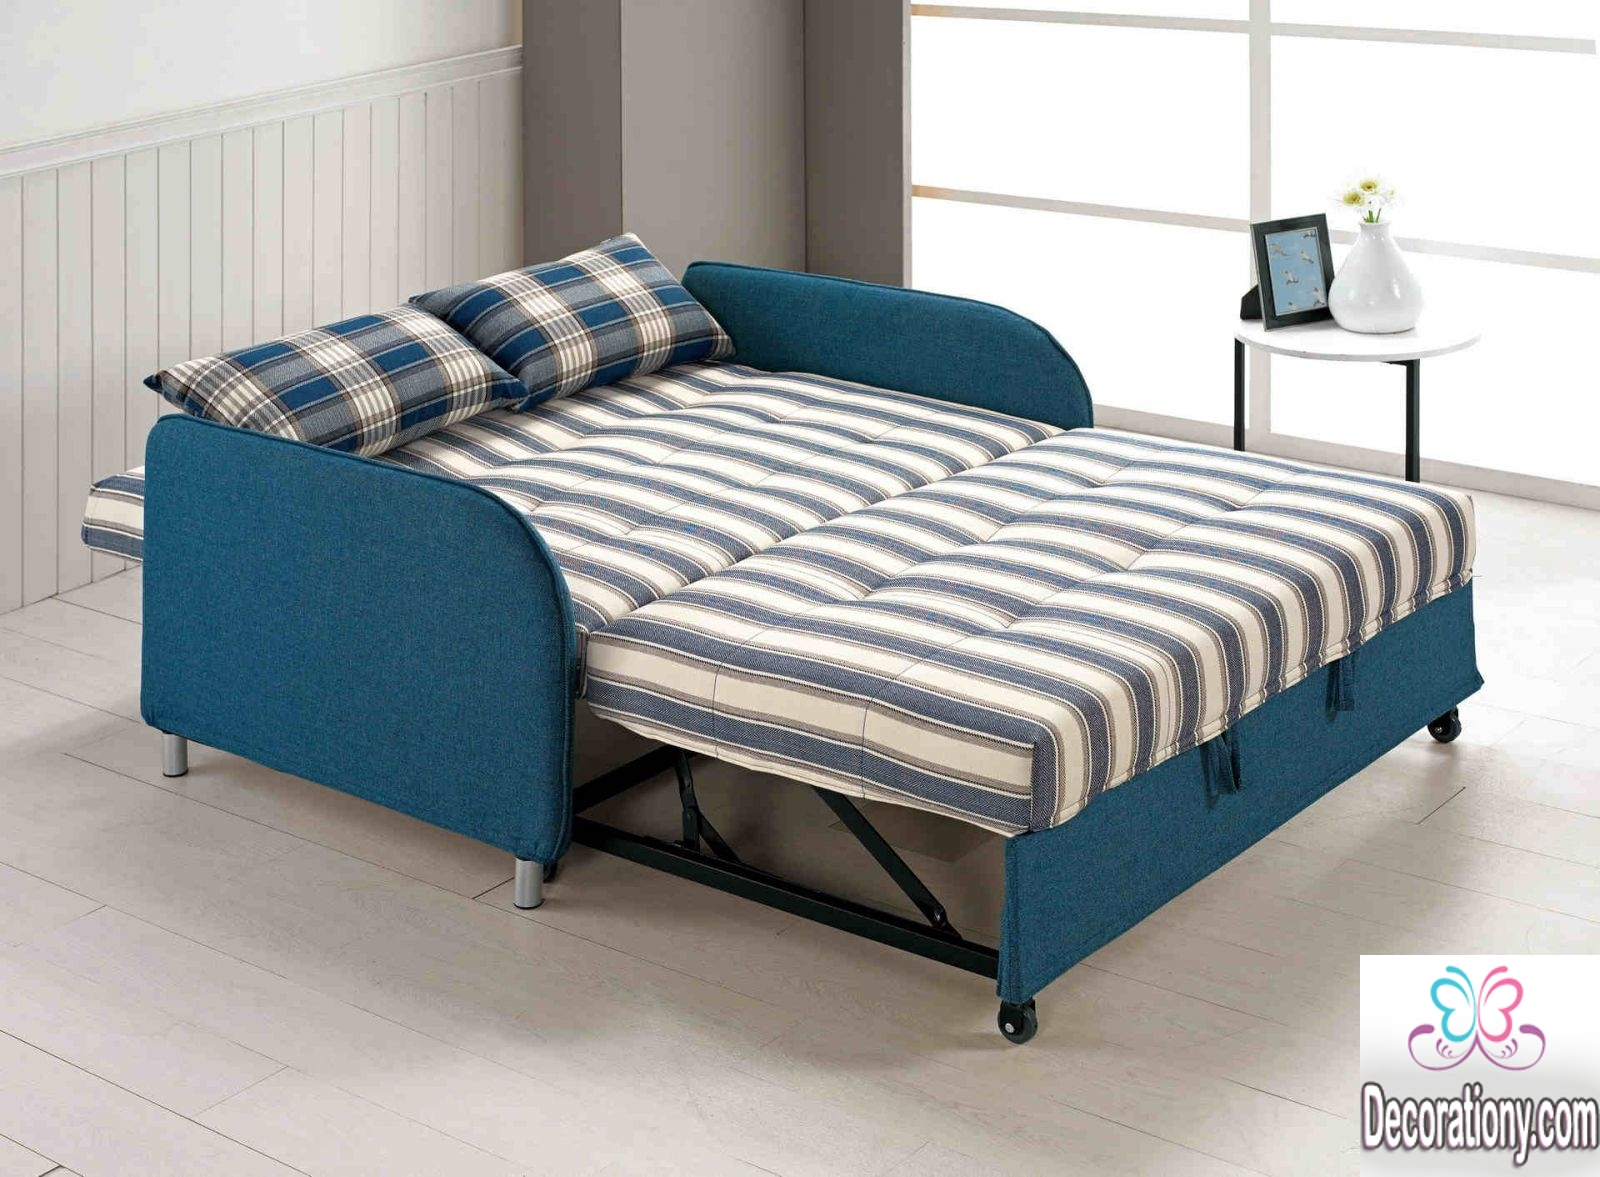 best type mattress sofa bed sleeper sofas orange county beds designs and ideas 2017 decor or design